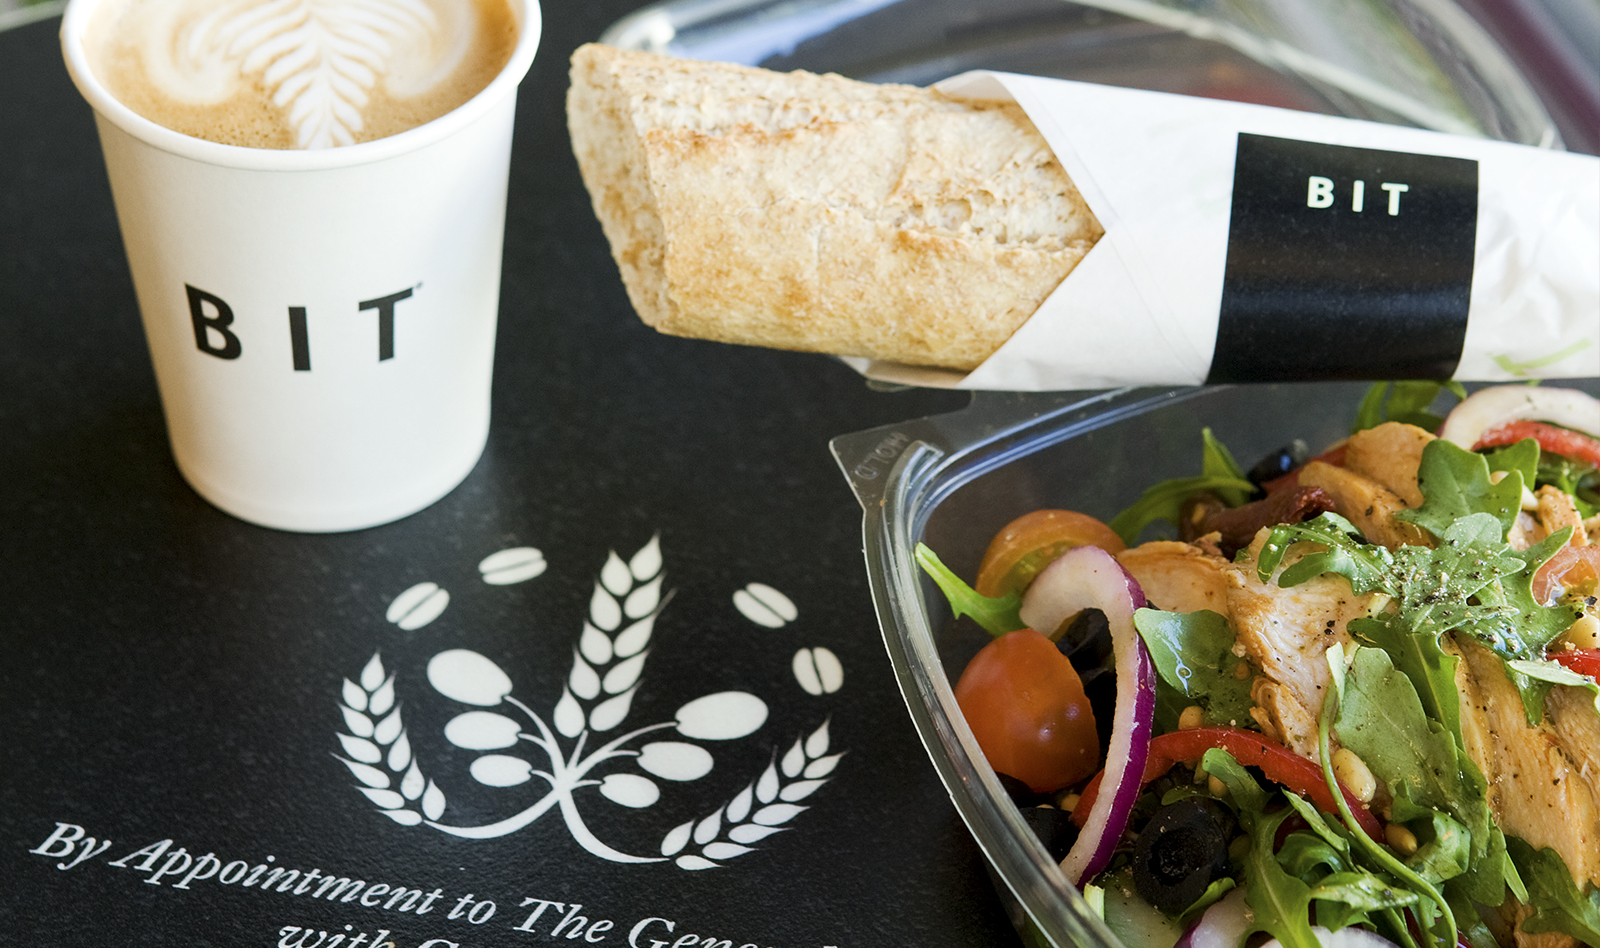 closeup of a wrapped baguette, a tray, and a coffee cup, printed with the BIT logo and symbol